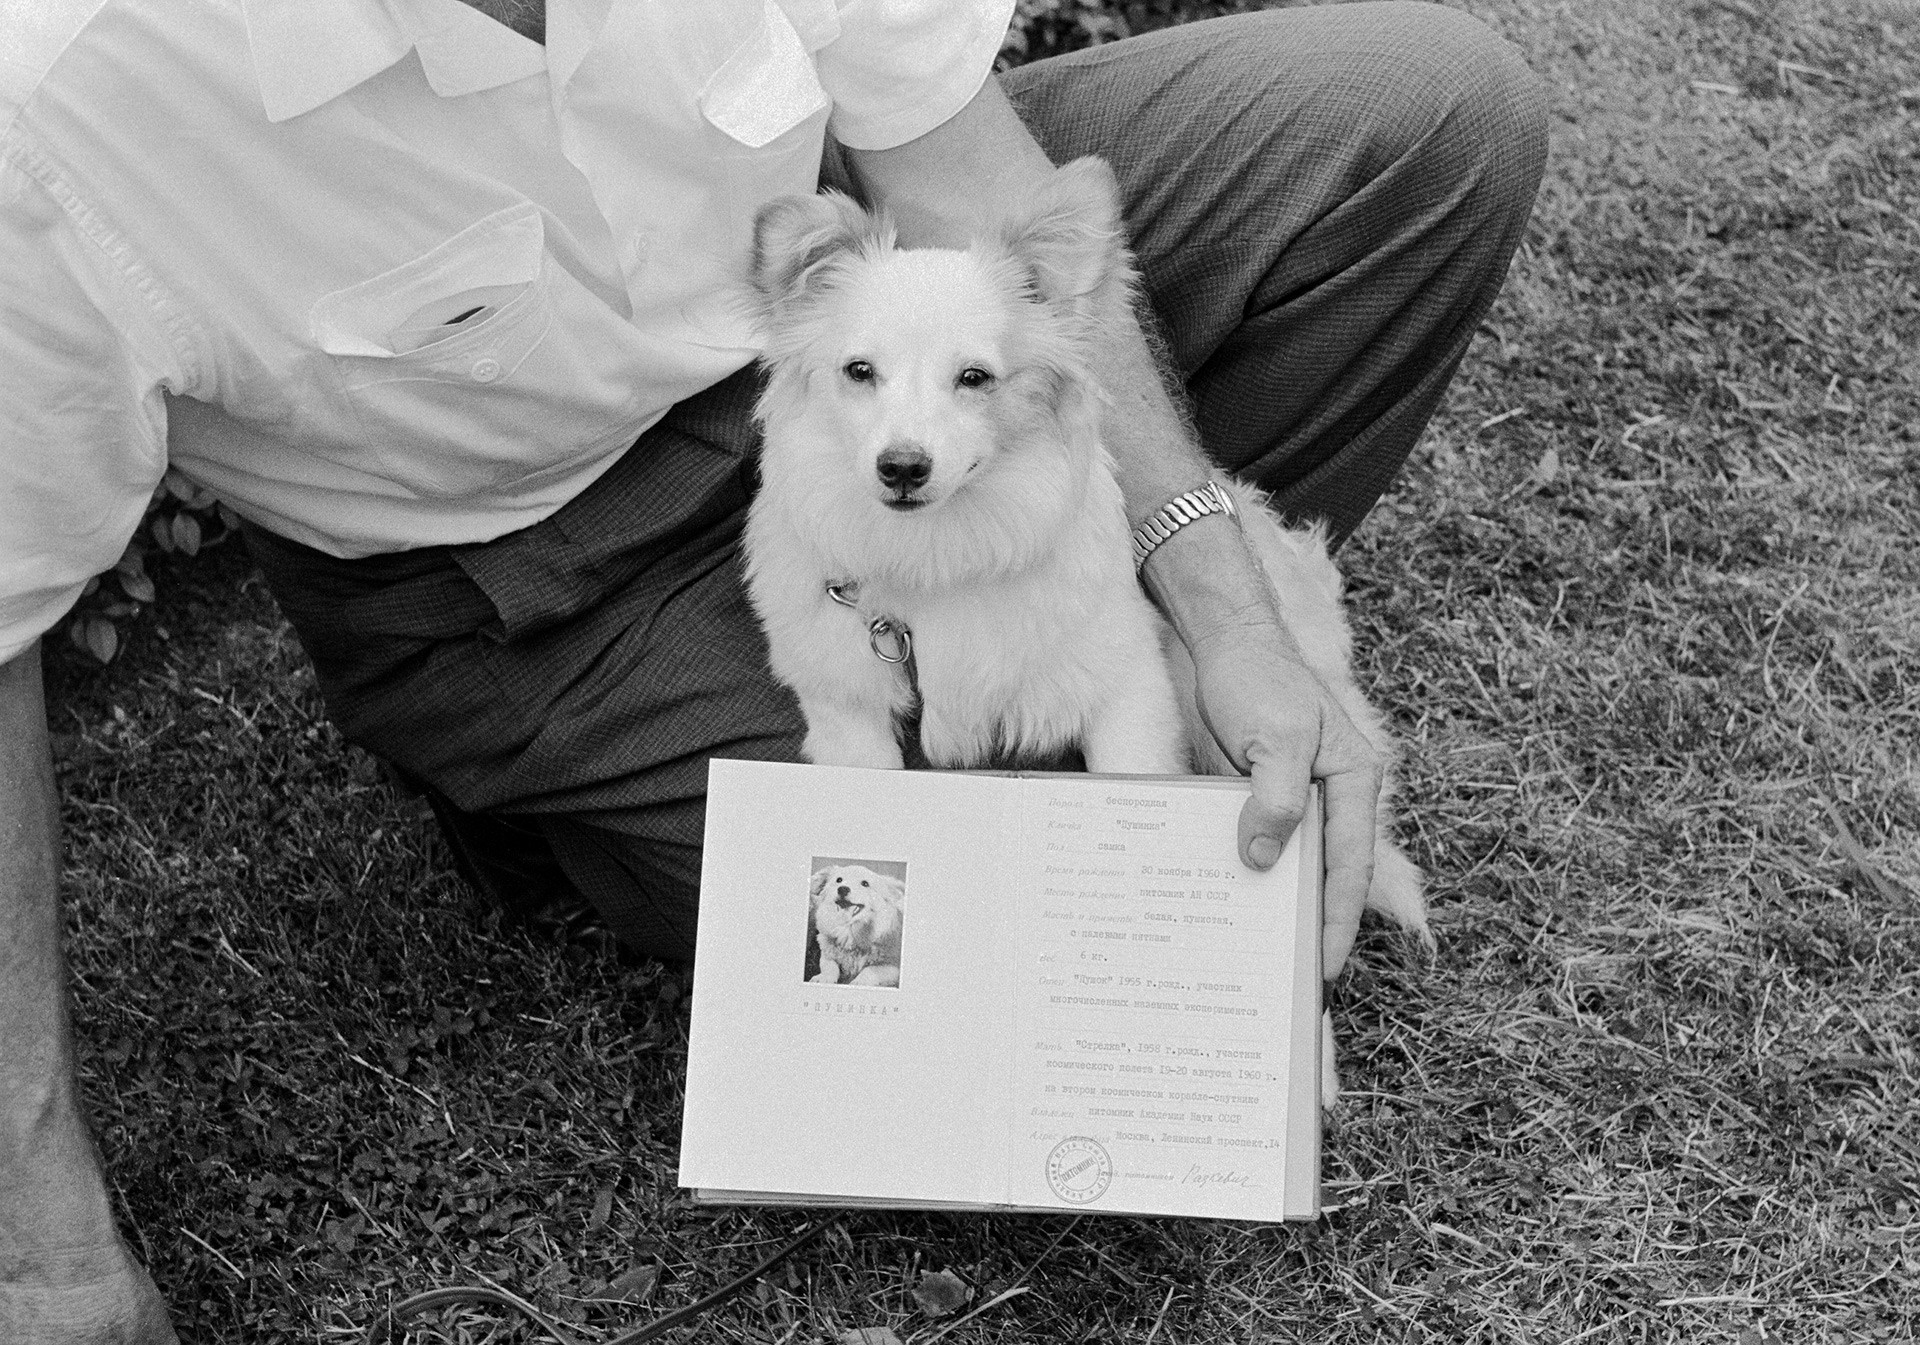 Pushinka with her Russian passport (yes, she had one!) soon after her arrival to the U.S.